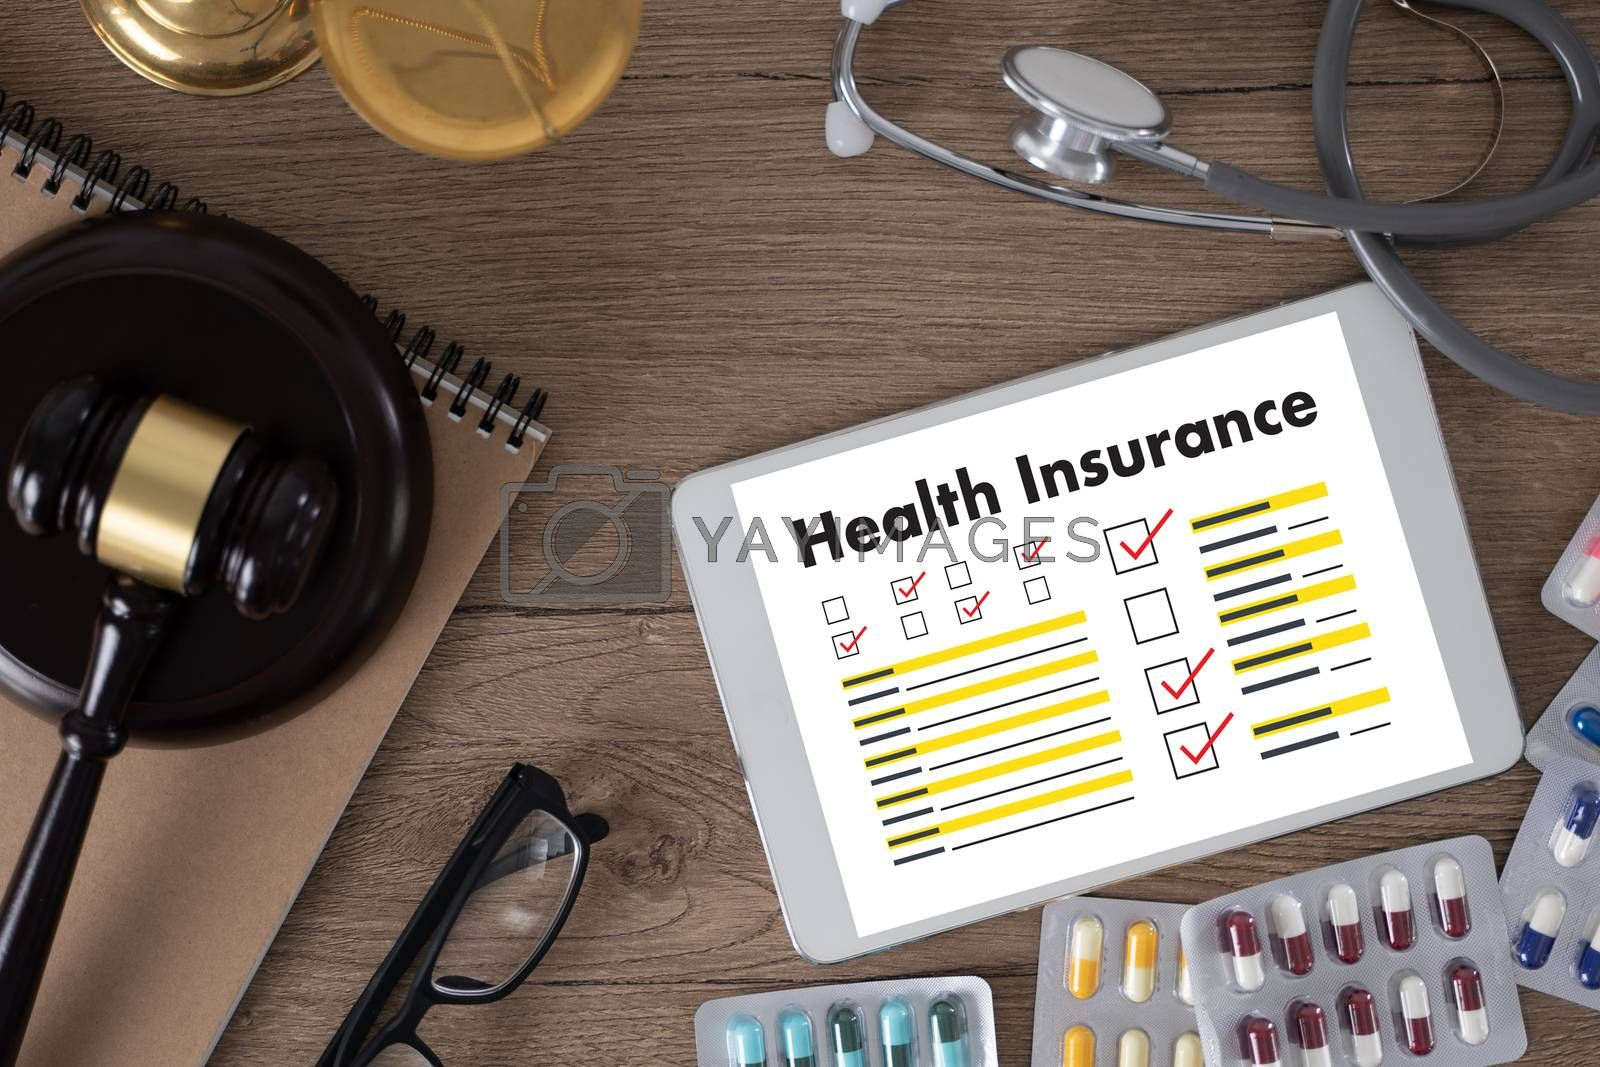 Health insurance   Claim form and Medical equipment health insurance concept for life